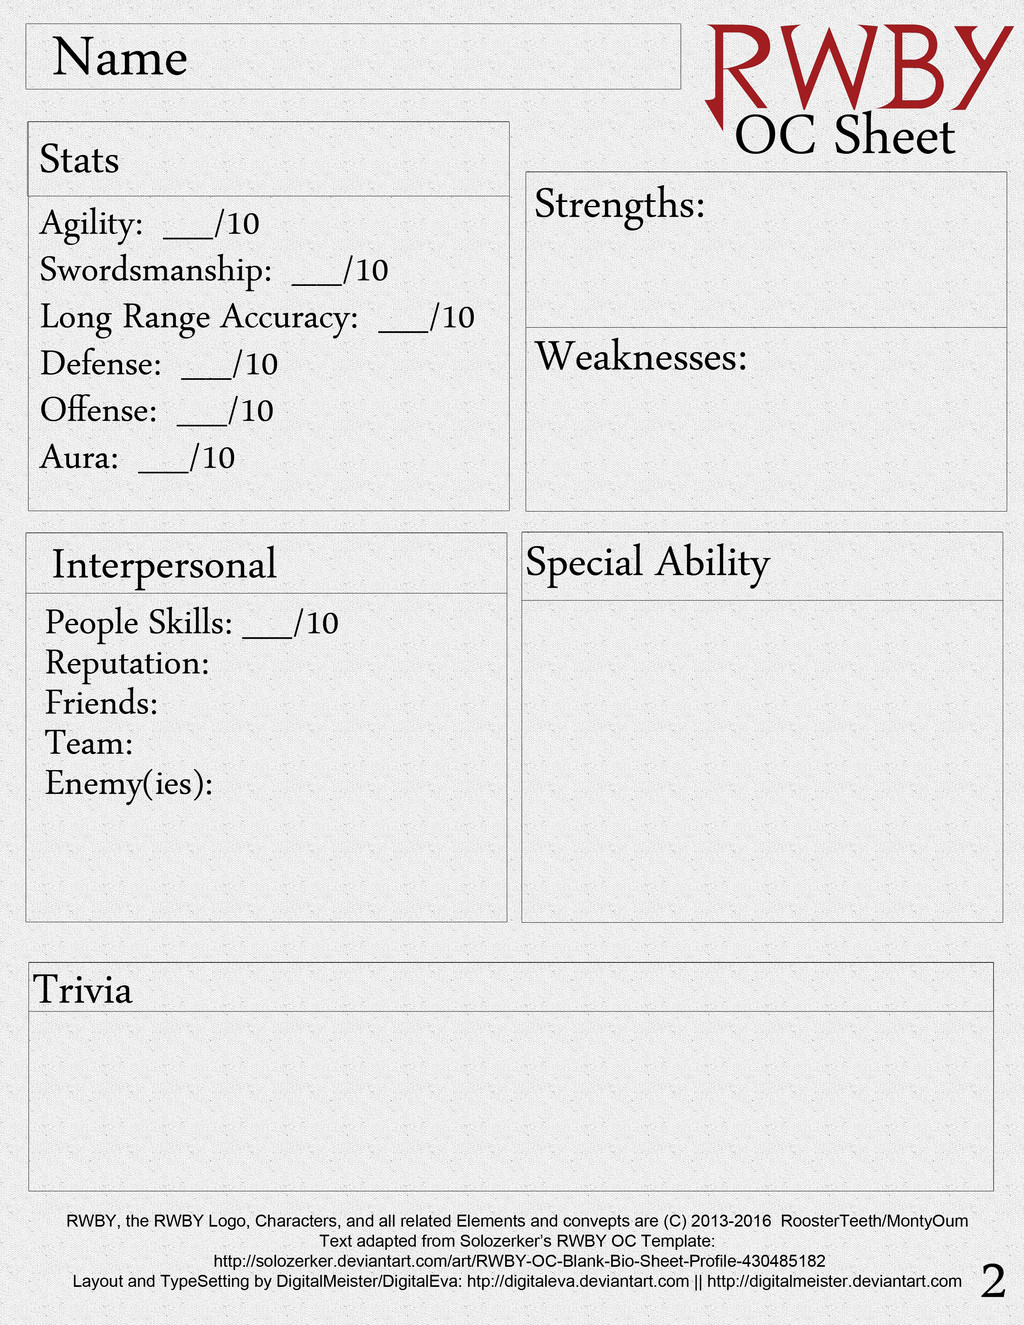 Rwby Oc Template Rwby Oc Character Sheet Printable Page 2 by Digitalmeister